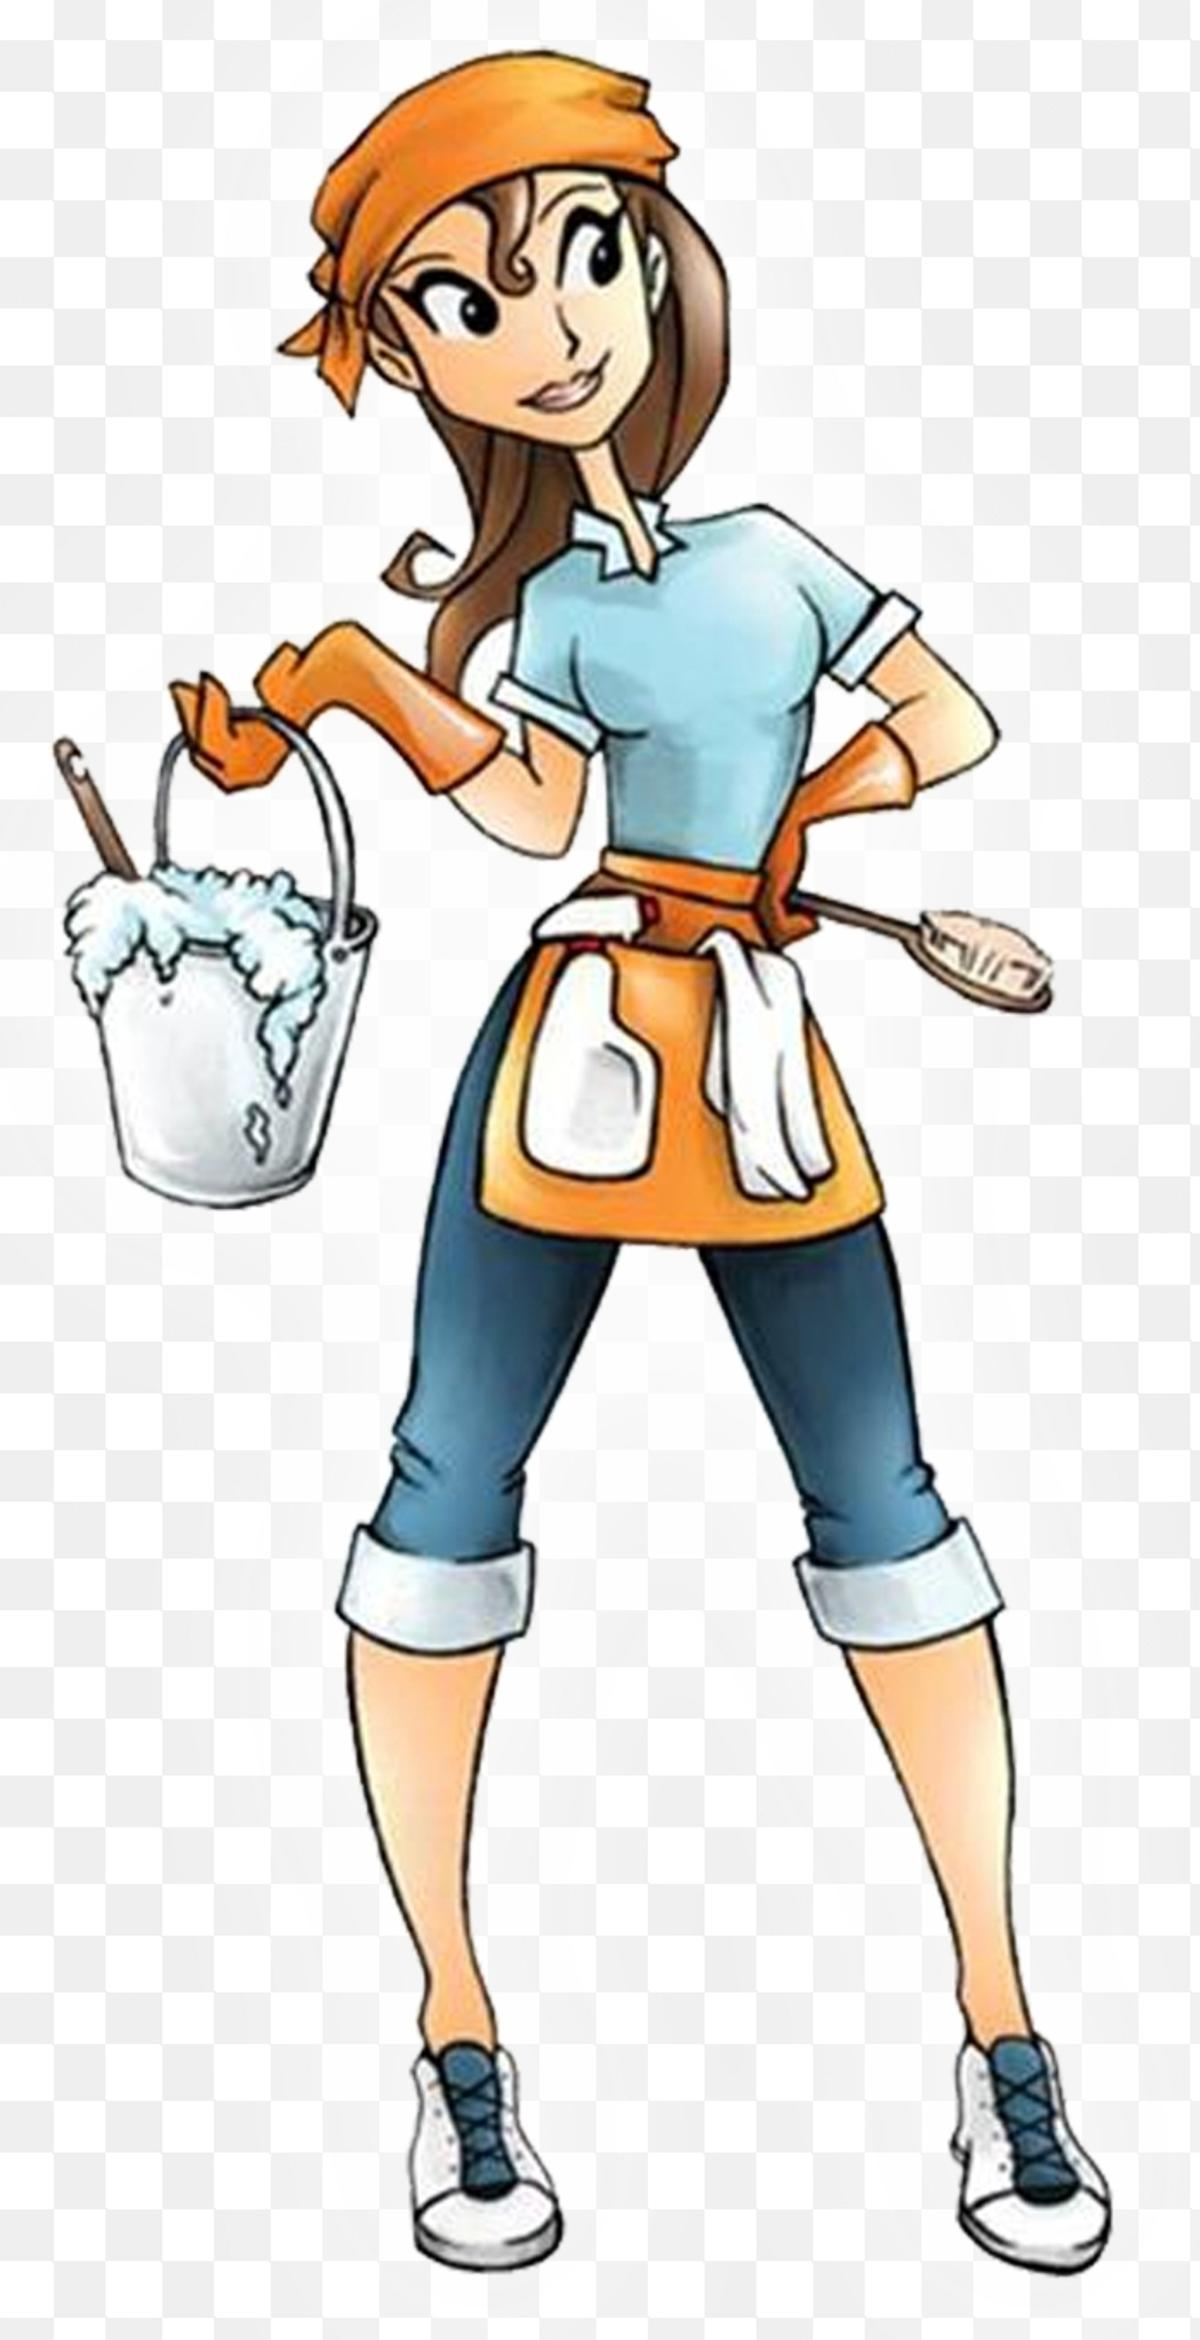 Dear Sir/ Madame! If you are looking for a reliable, trustworthy, hard working cleaner/housekeeper look no further. I do help you with your cleaning, shopping, laundry, ironing etc..... needs I offer a professional friendly service! I'm independent and experienced. Are you struggling to keep up with the household chores? I will clean your house, apartment or office to your high specification guaranteed to make sure you will become my long term customer. £10/hour,but minimum booking 2 hours!